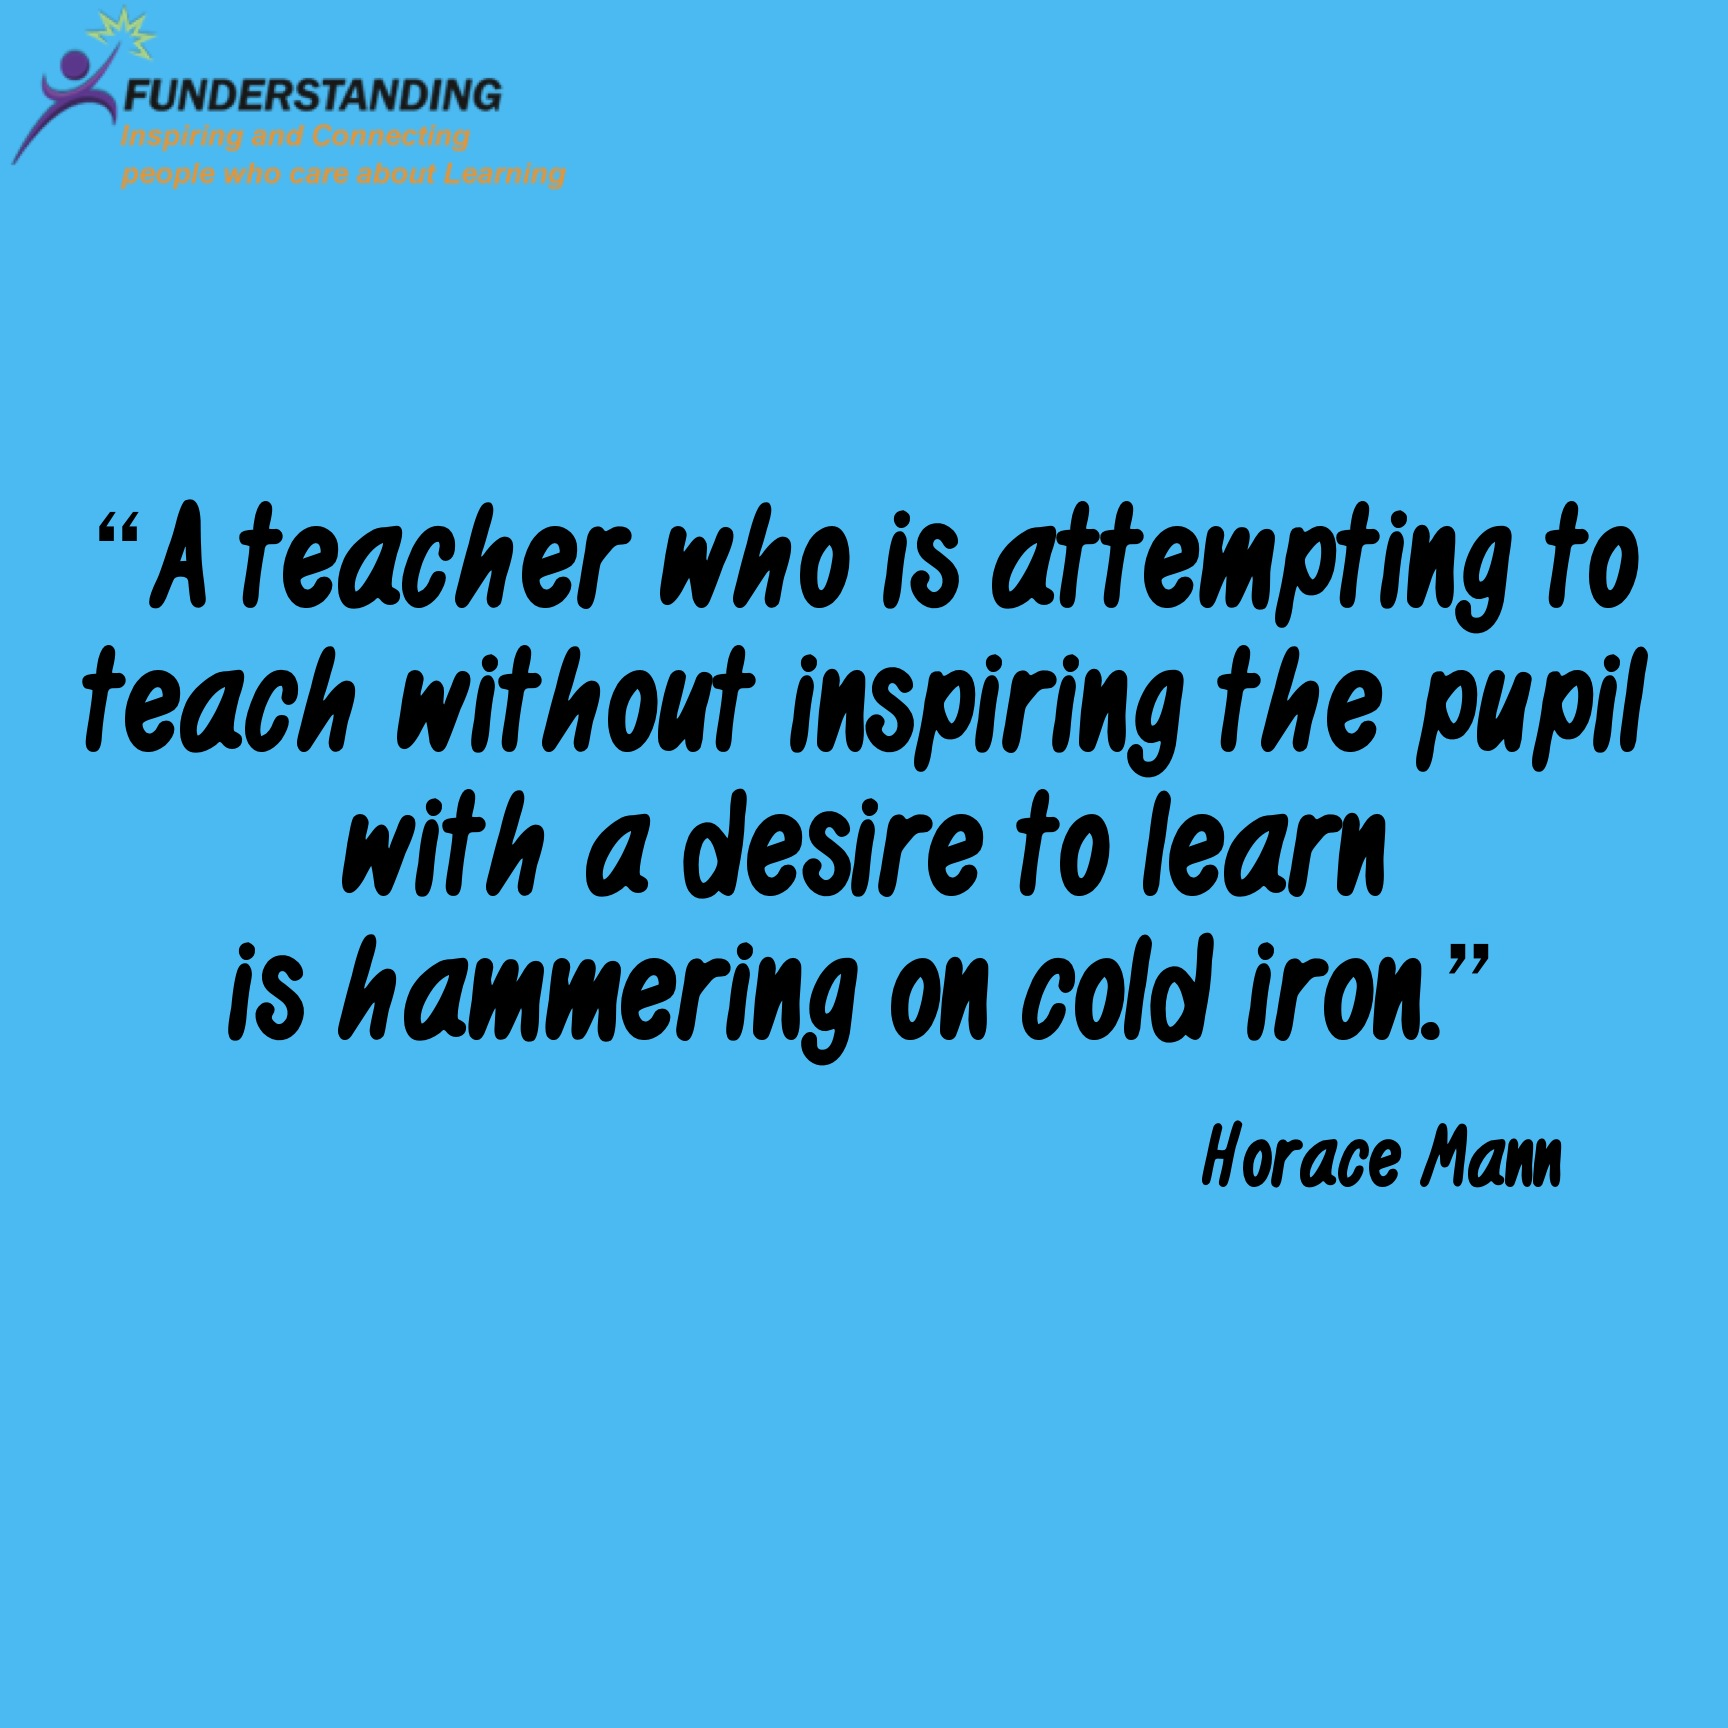 Great Quotations Educational Quotes  Funderstanding Education Curriculum And